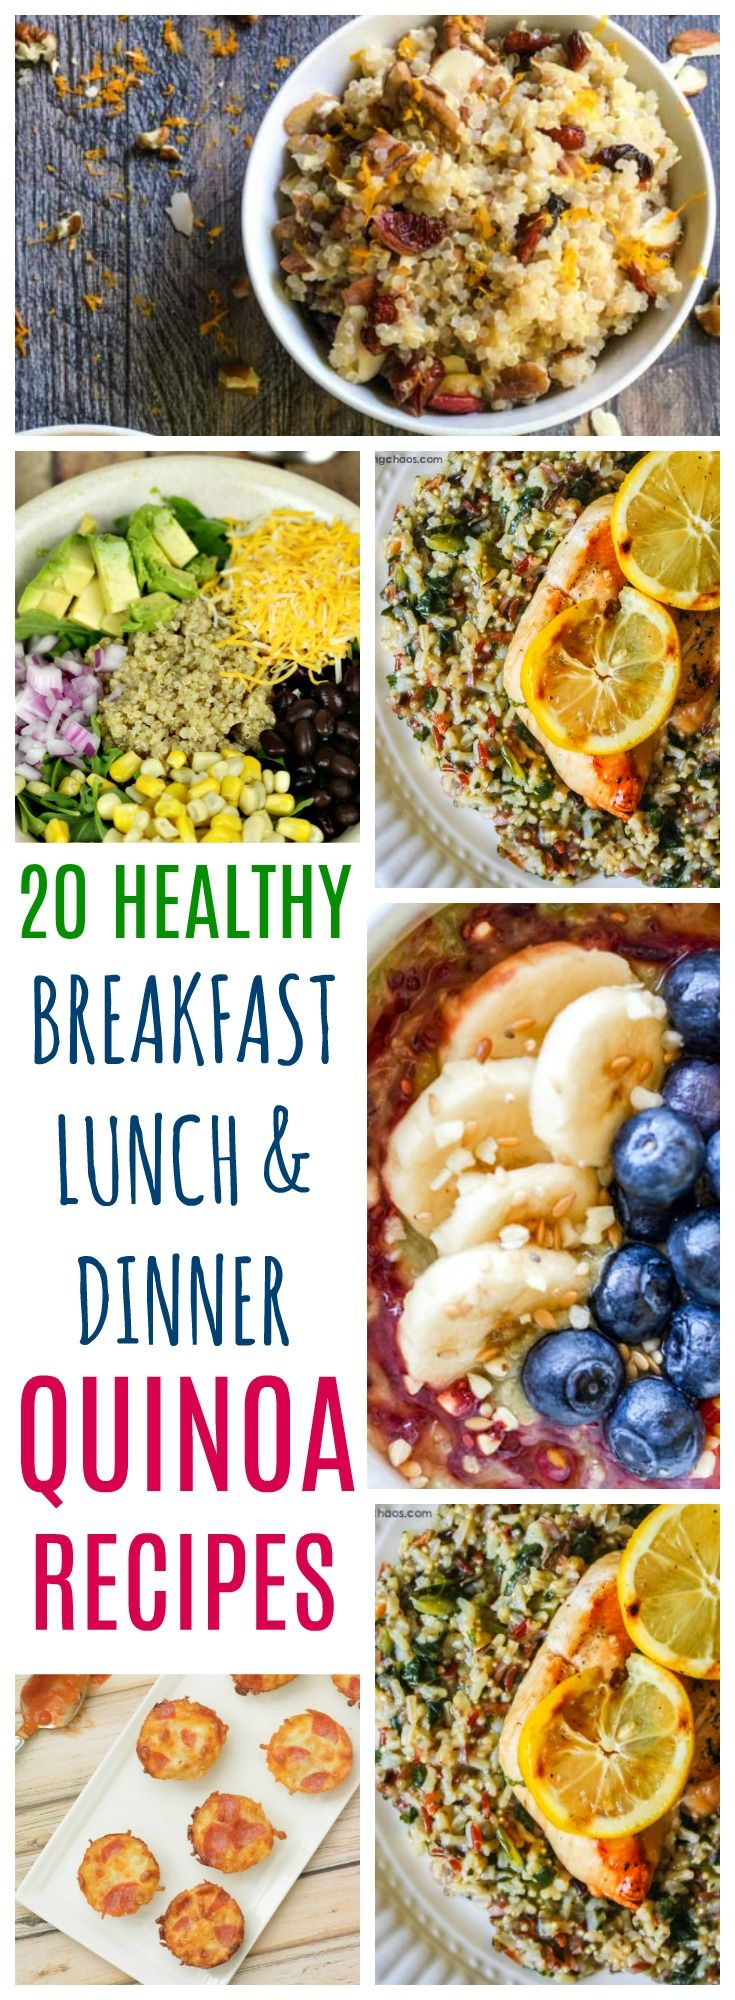 20 Healthy Quinoa Recipes For Breakfast, Lunch, and Dinner via @perfectpending